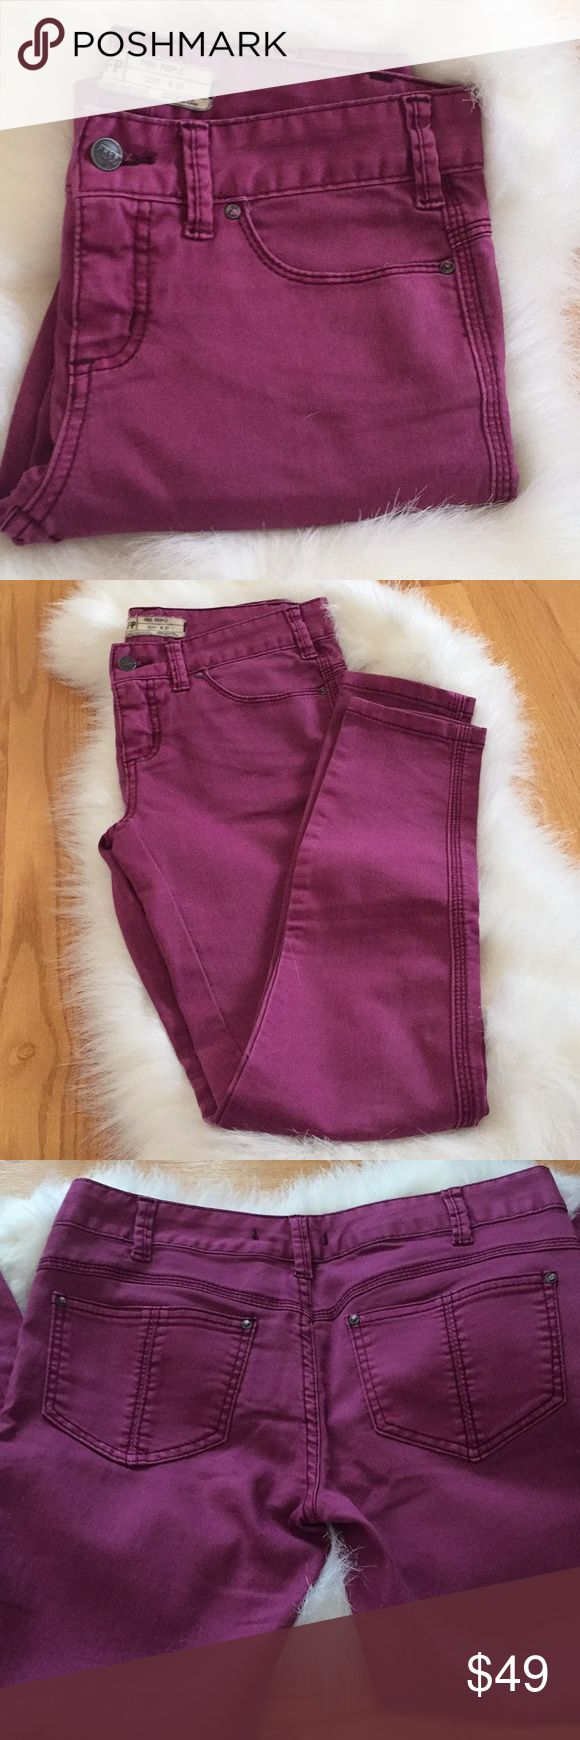 FREE PEOPLE Plum Skinny Jean Size W27 FREE PEOPLE Beautiful Plum Color Skinny Jean Size W27 Excellent condition with no holes or stains(see pictures) ✨Buy before it sells out✨ NO TRADES! NO HOLDS!  ALL OF MY ITEMS COME FROM SMOKE FREE, AND PET FREE HOME. Free People Jeans